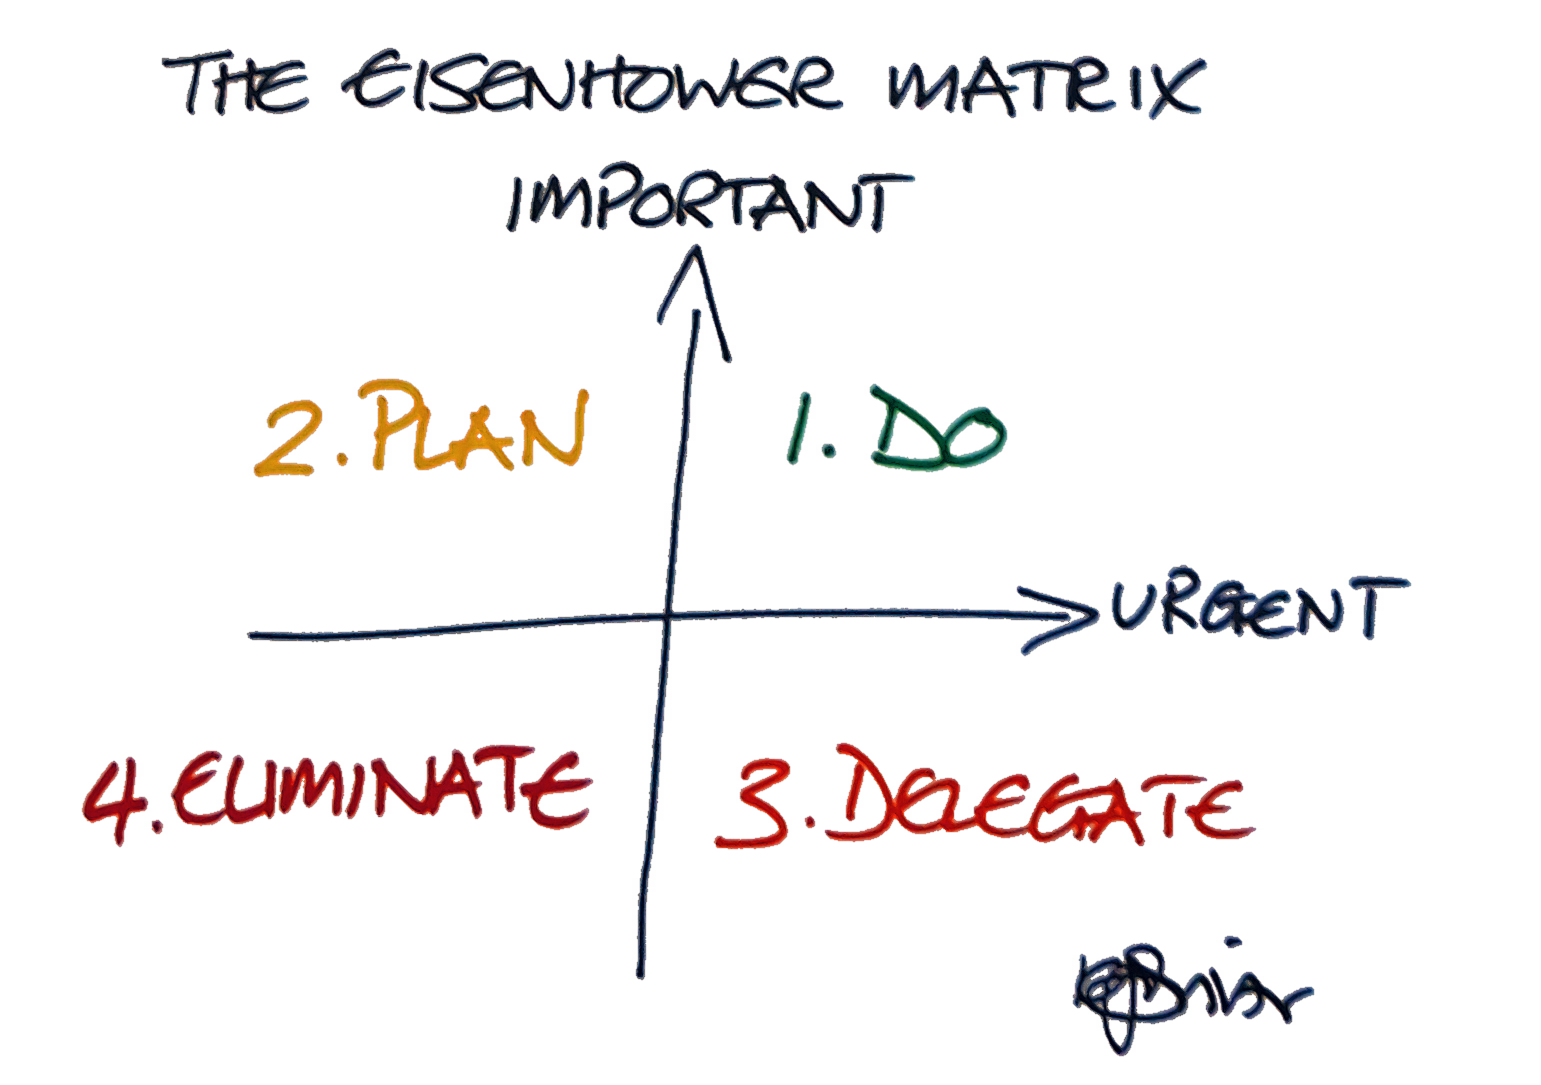 The Eisenhower Matrix showing how to classify and then deal with Important and Urgent tasks